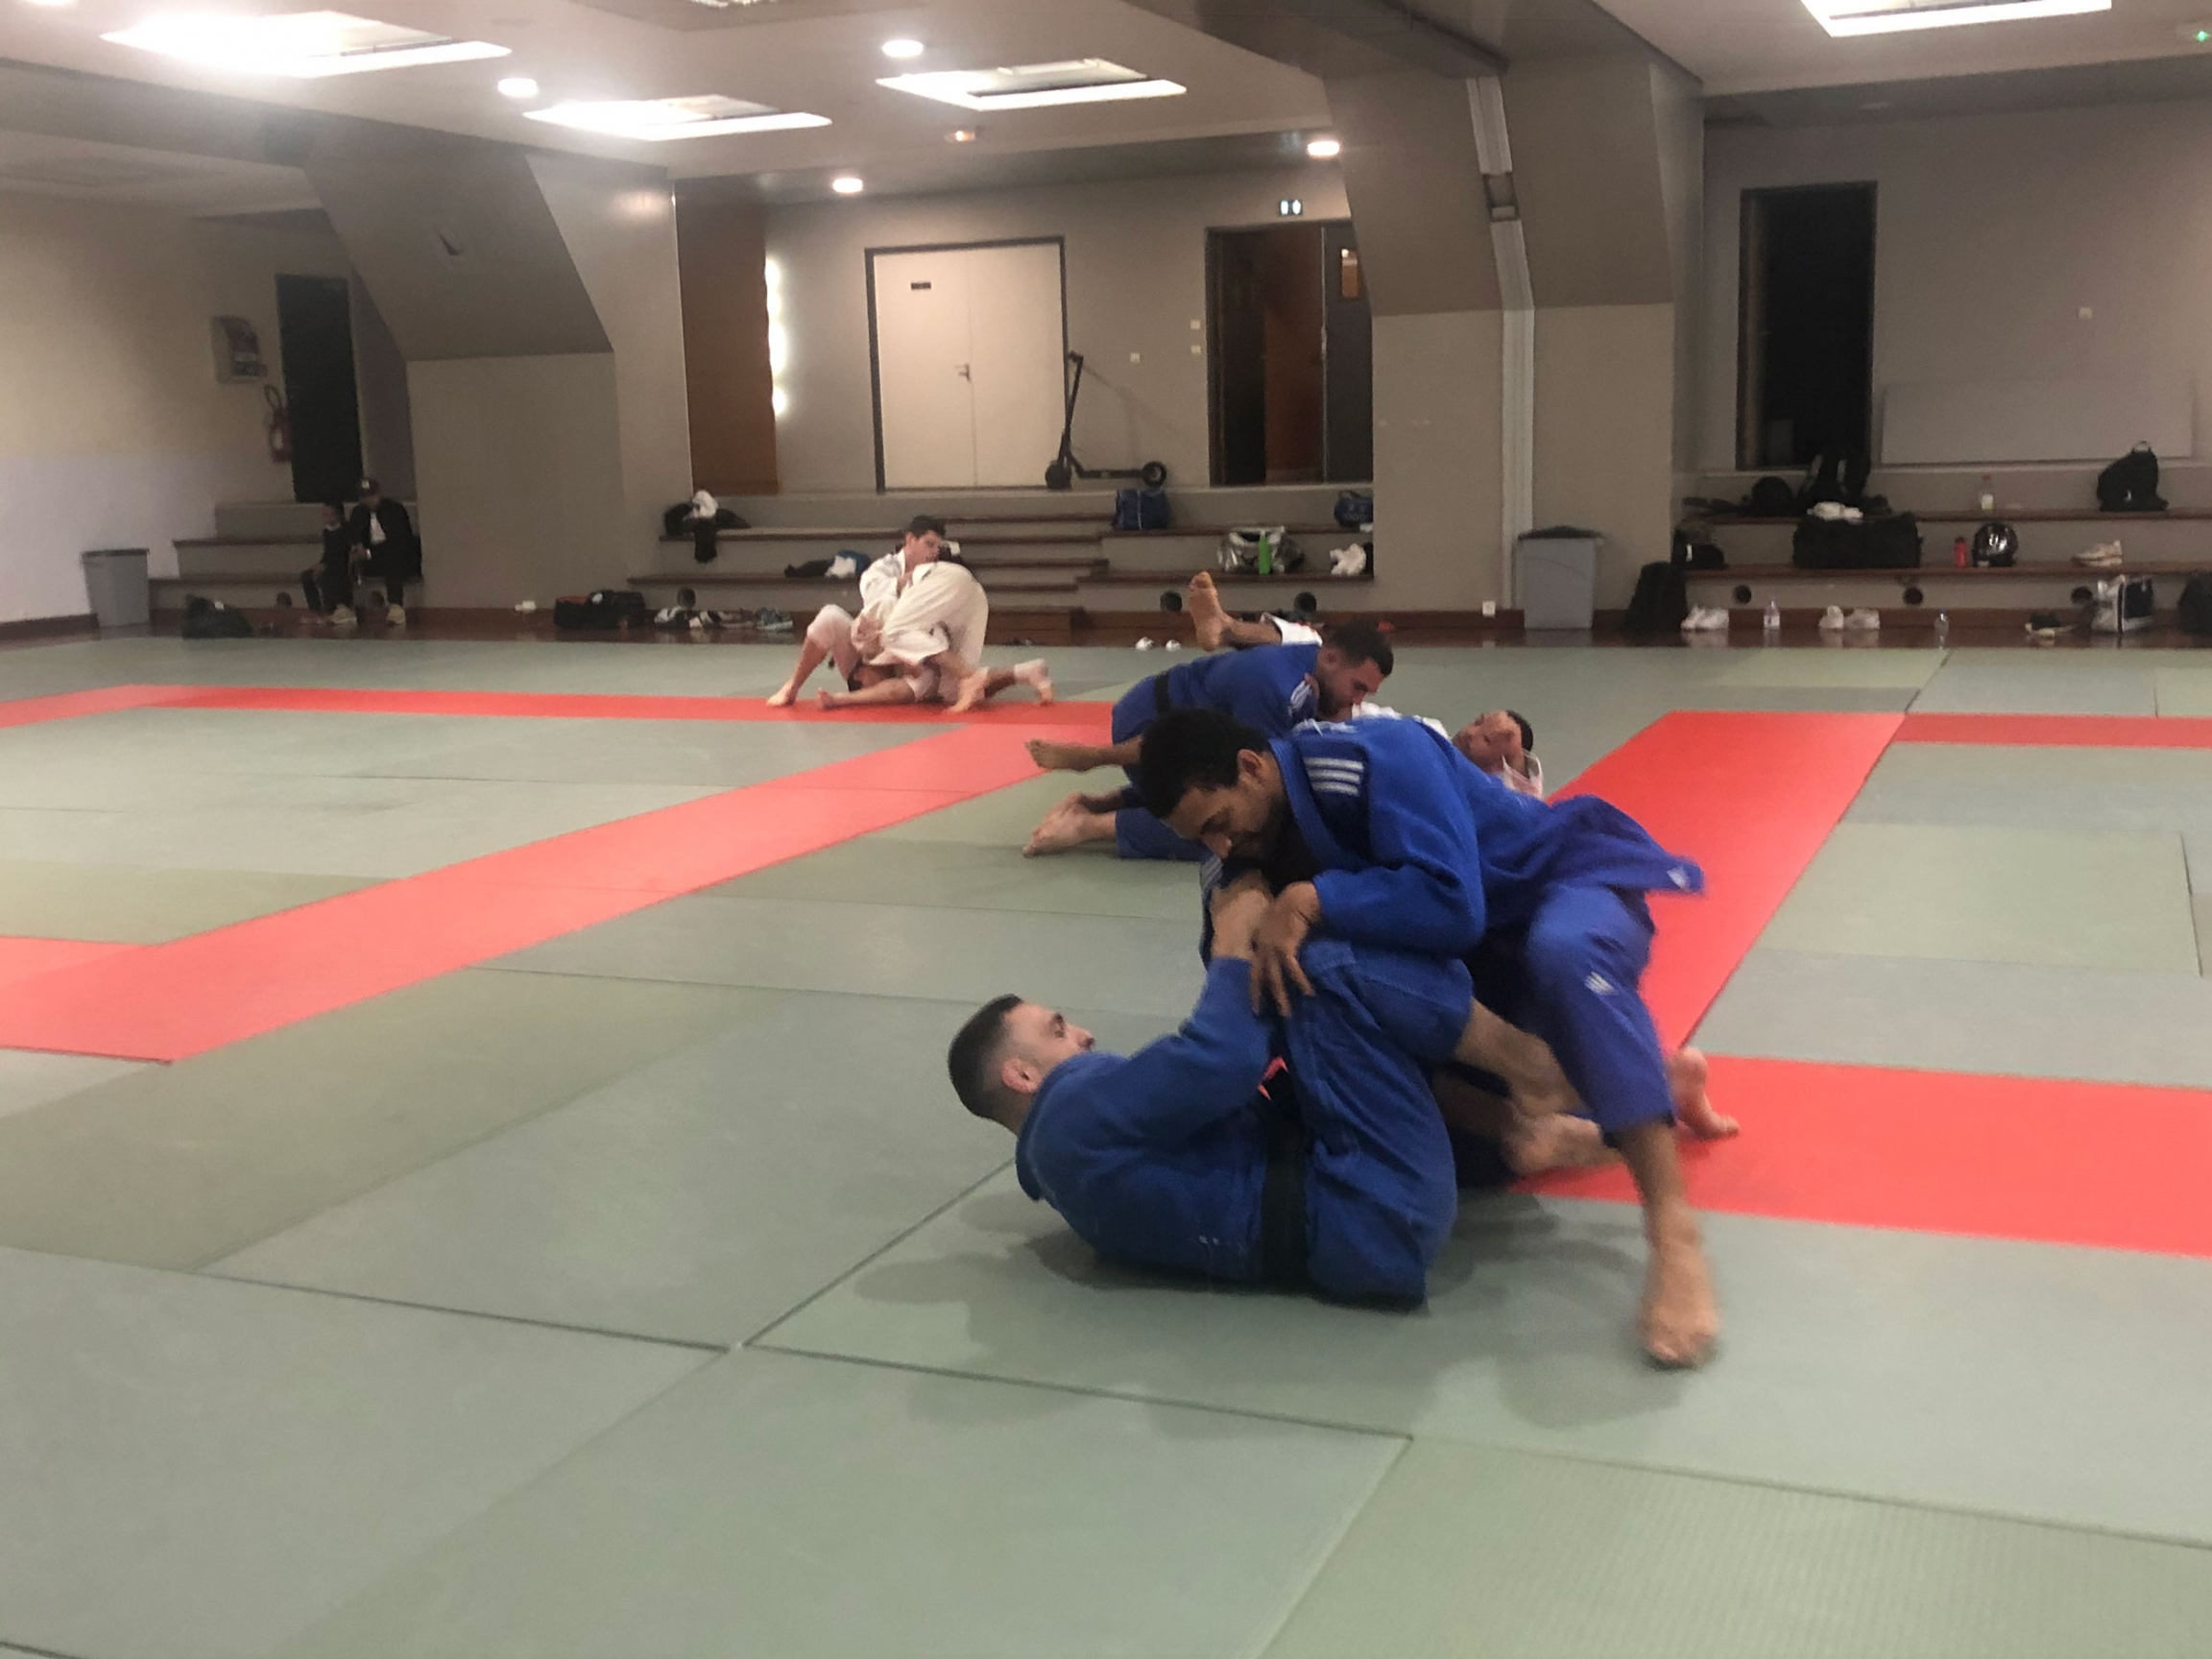 A judo training center on the southern edge of Paris is packed, even though it's the start of the summer holiday season.